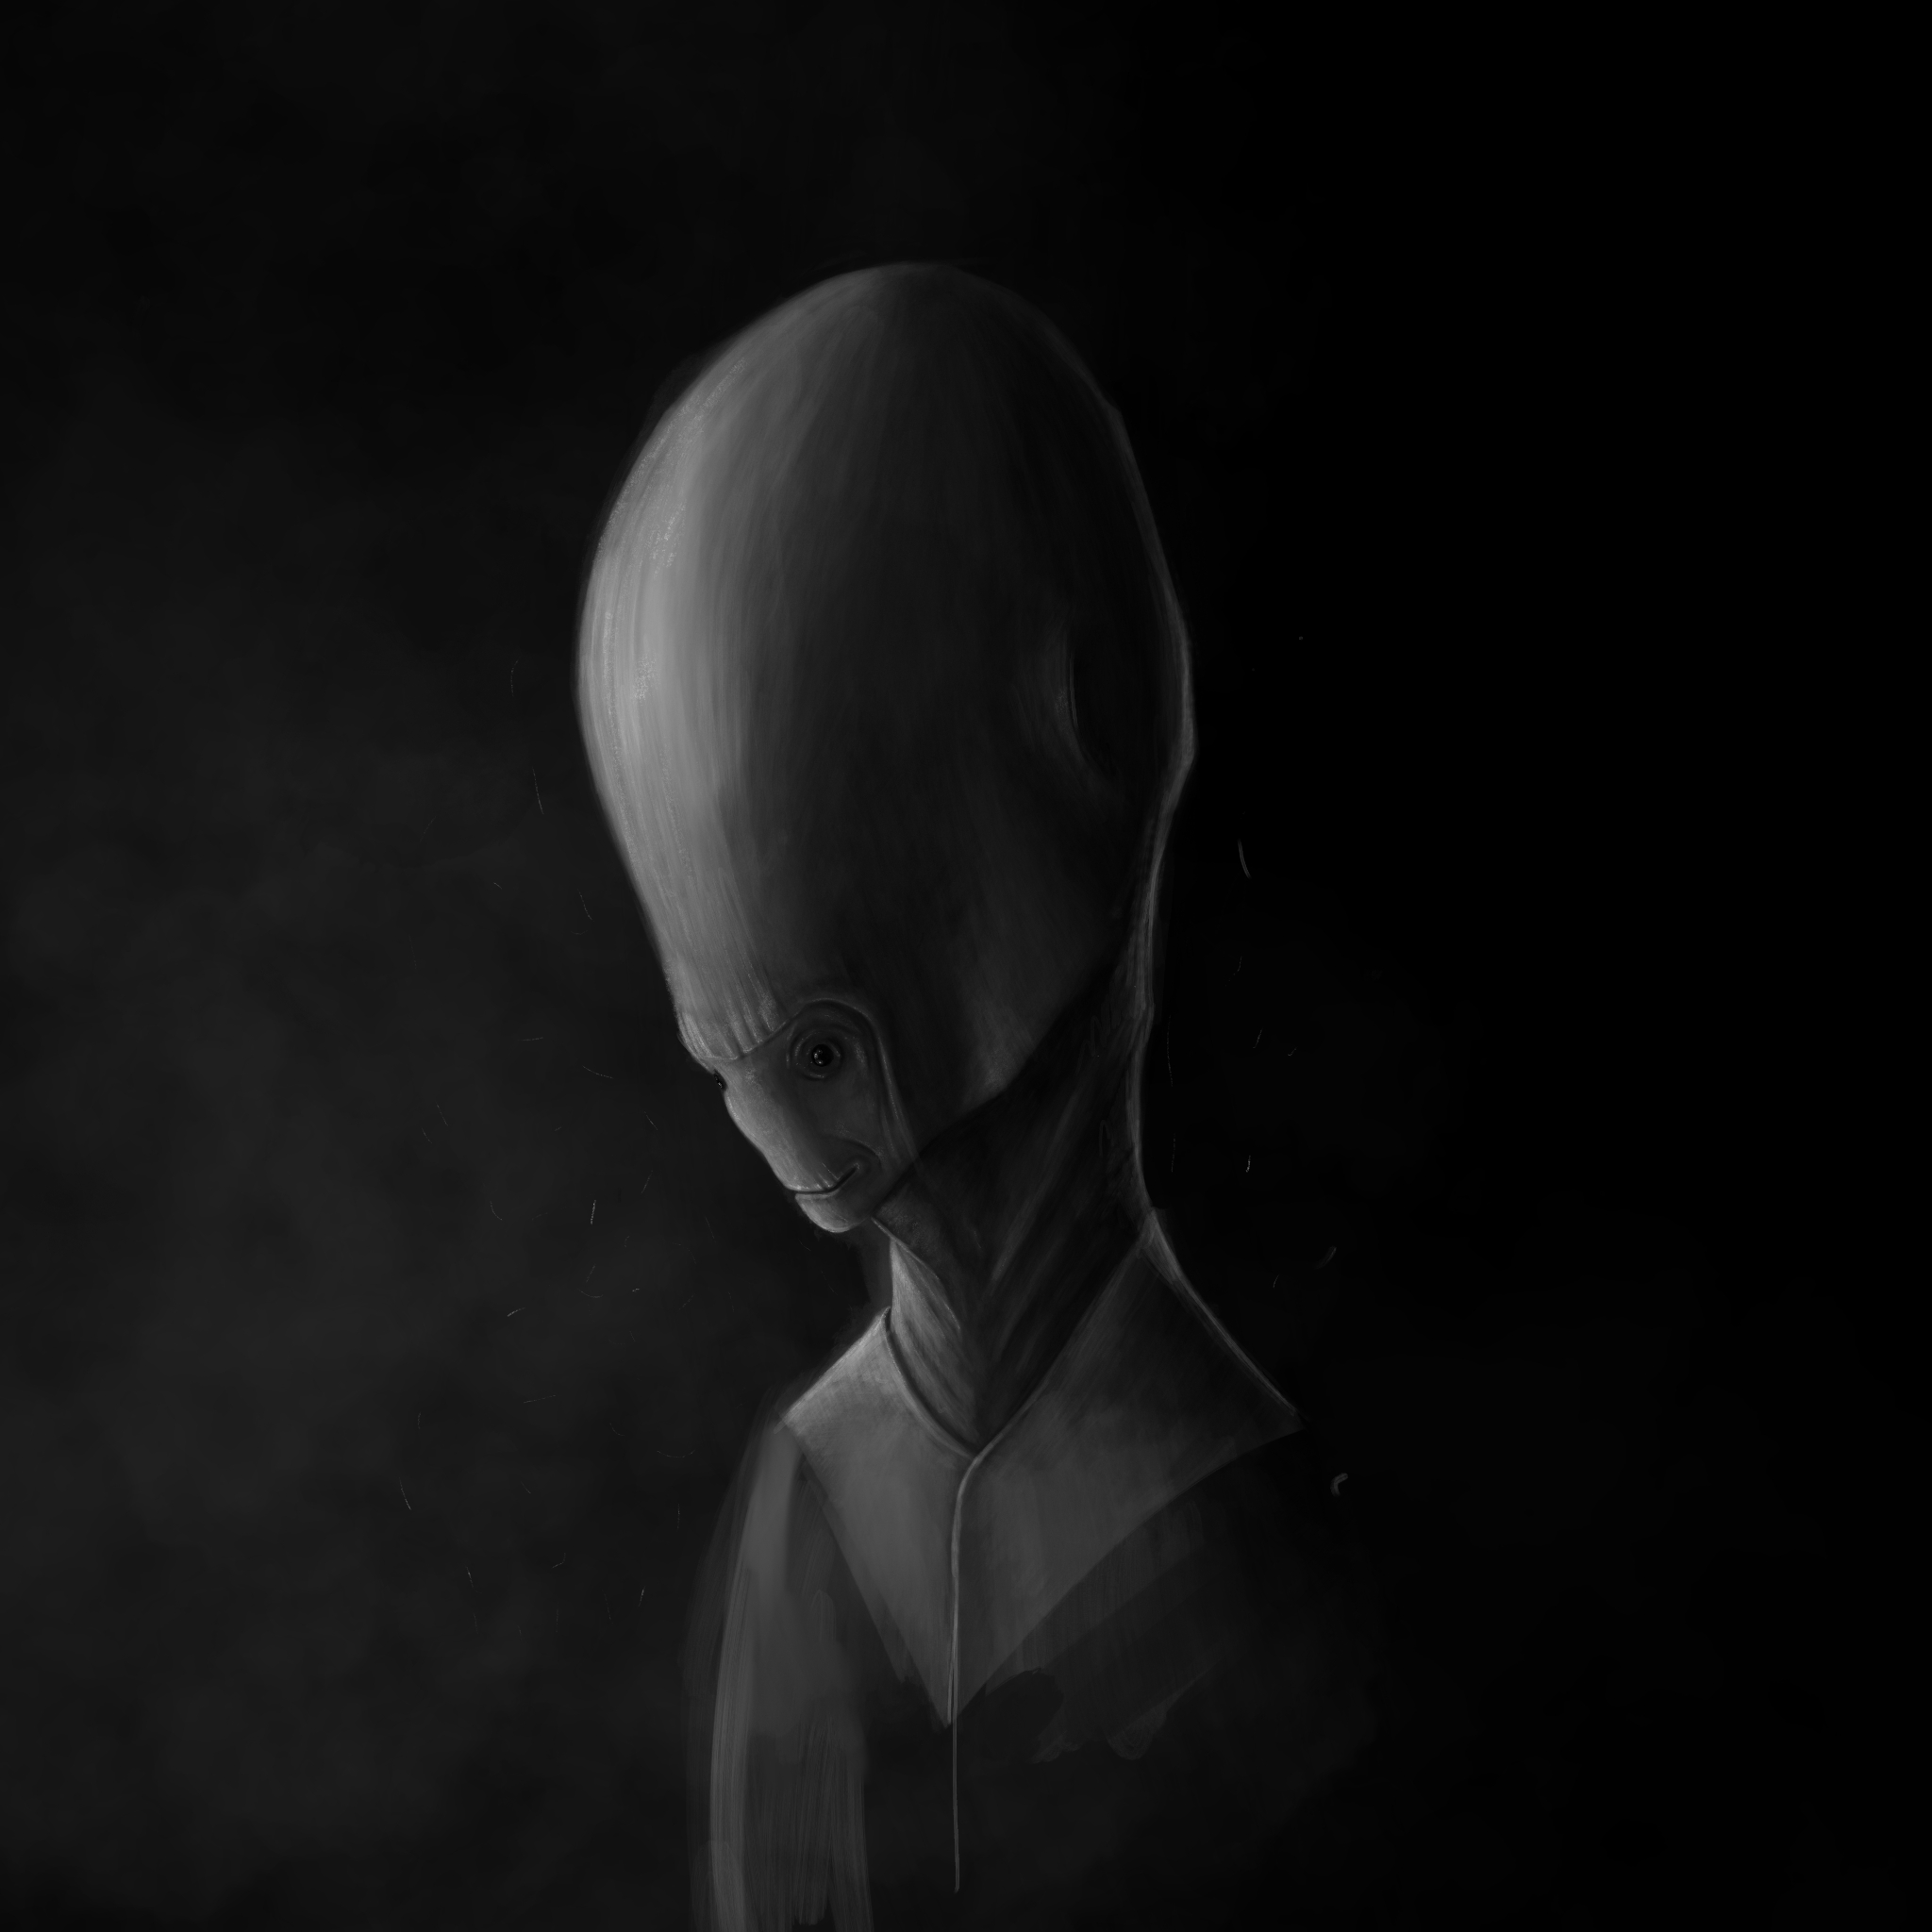 Digital painting, concept art illustration. Alien character with big head